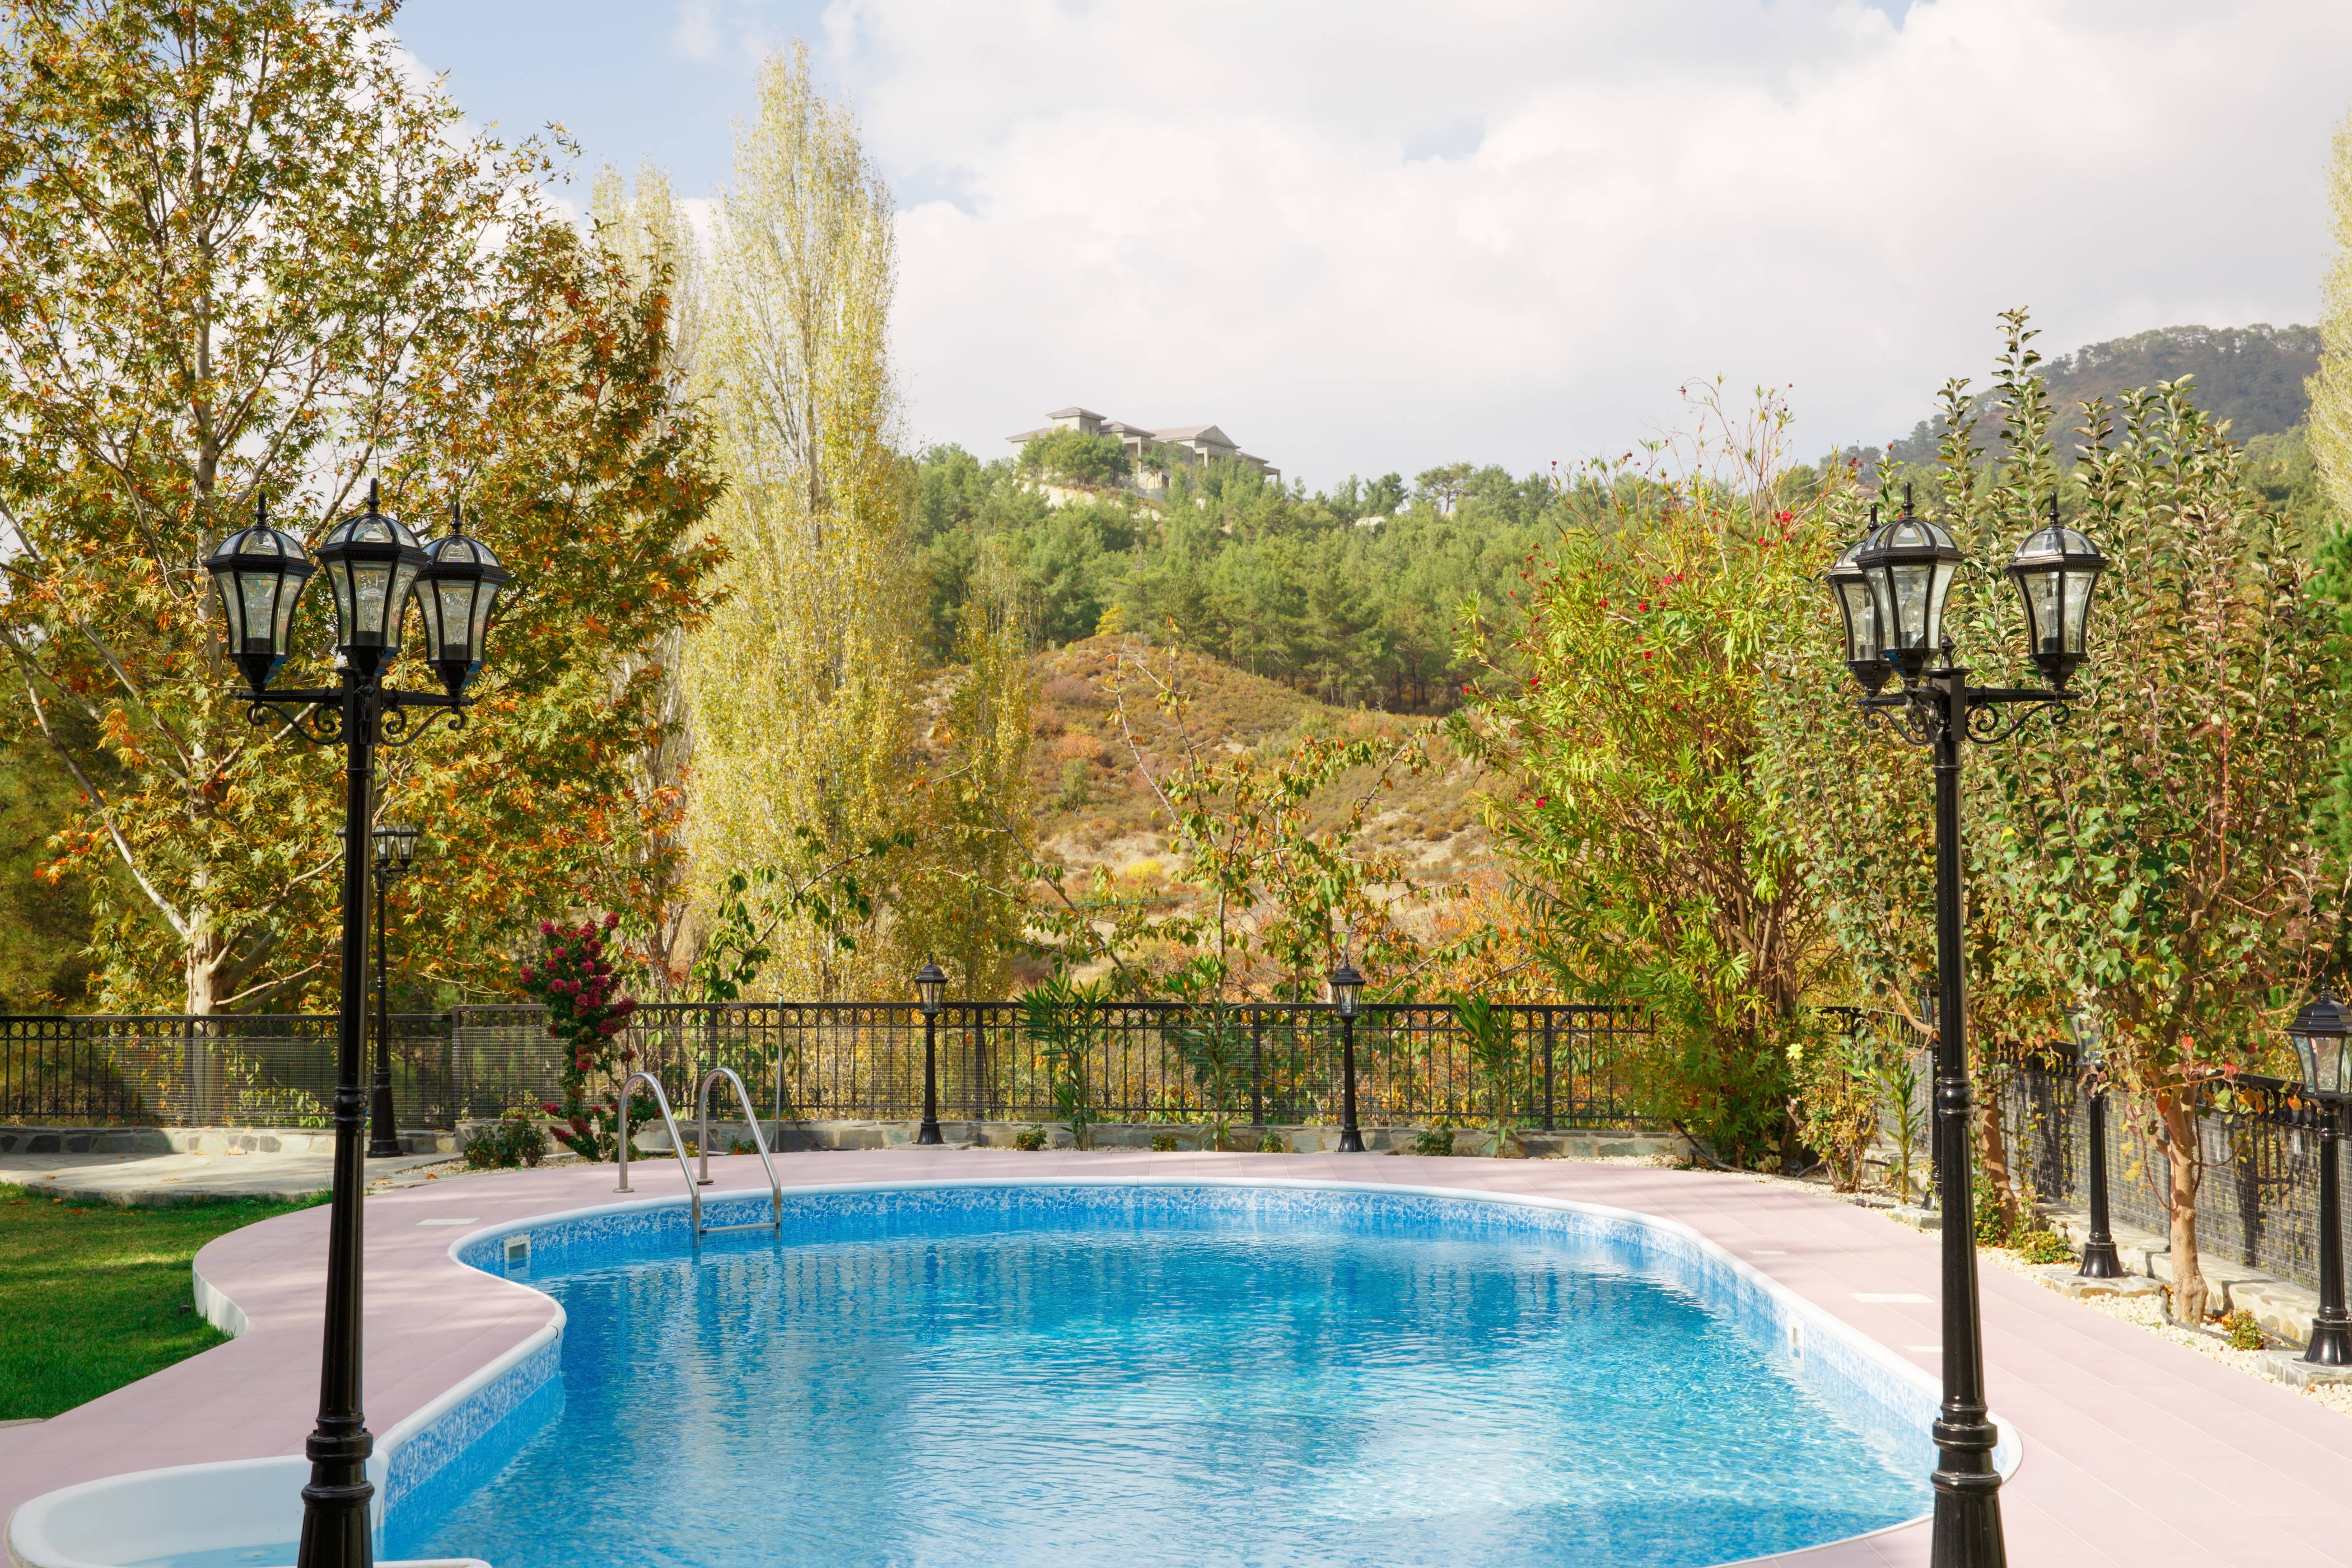 Virginia county swimming pool gate and fence laws - Virginia swimming pool regulations ...